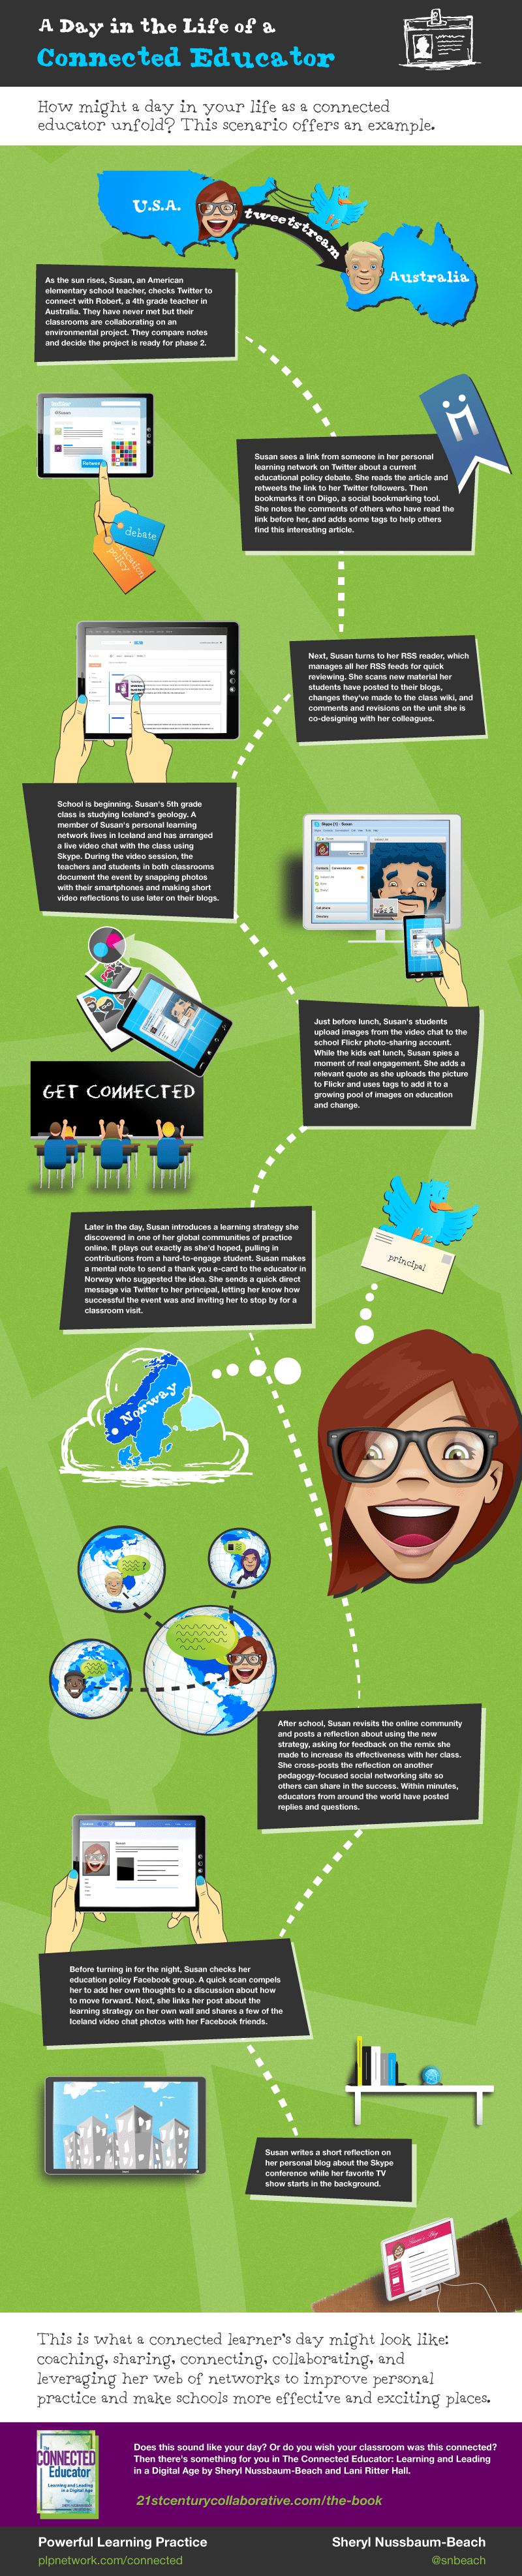 A Day in the Life of a Connected Educator